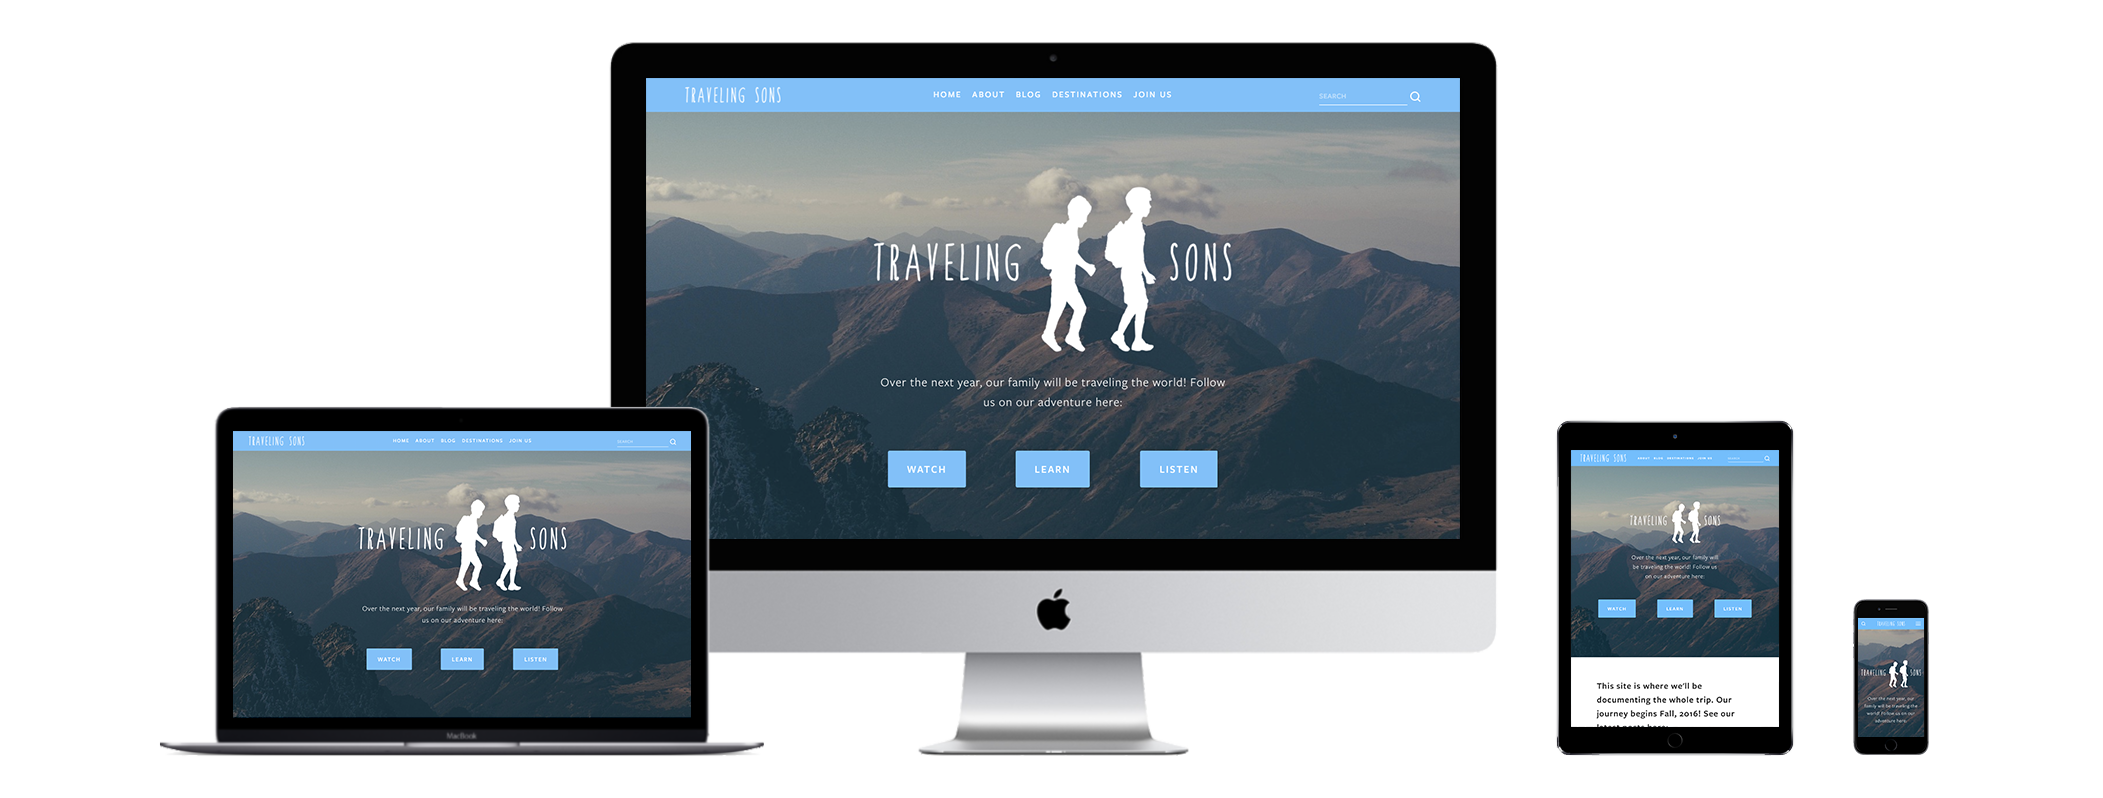 XYZ Design | Traveling Sons Website Device Displays